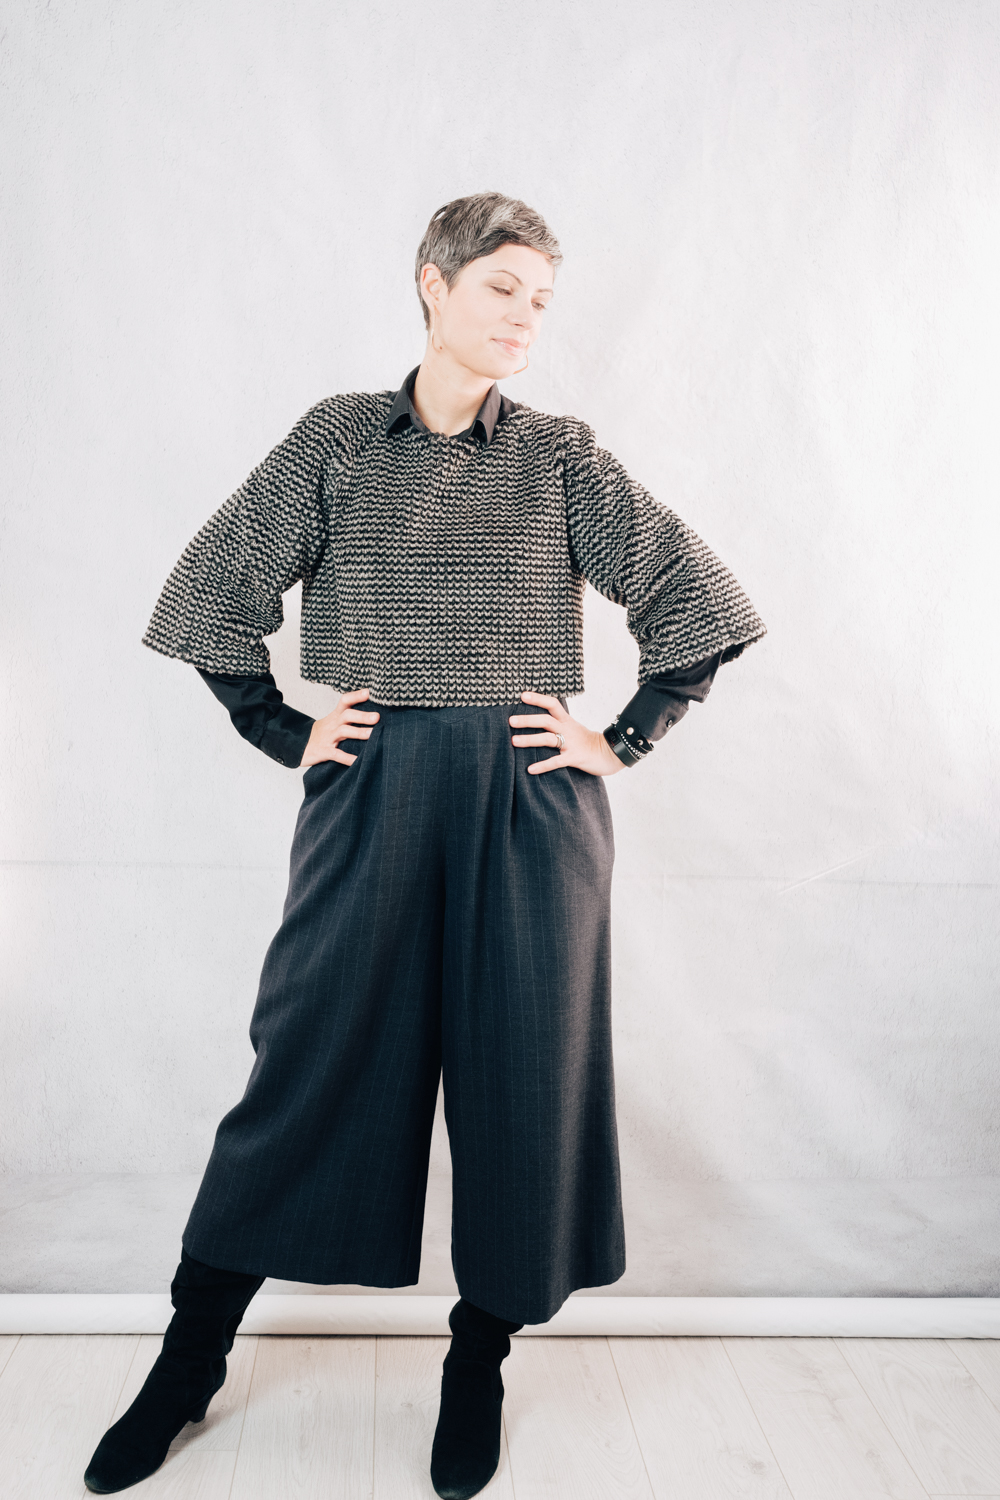 DIY Wearologie Nivis crop top in faux fur; RTW black button-down shirt; DIY wool pinstriped culottes; RTW suede boots